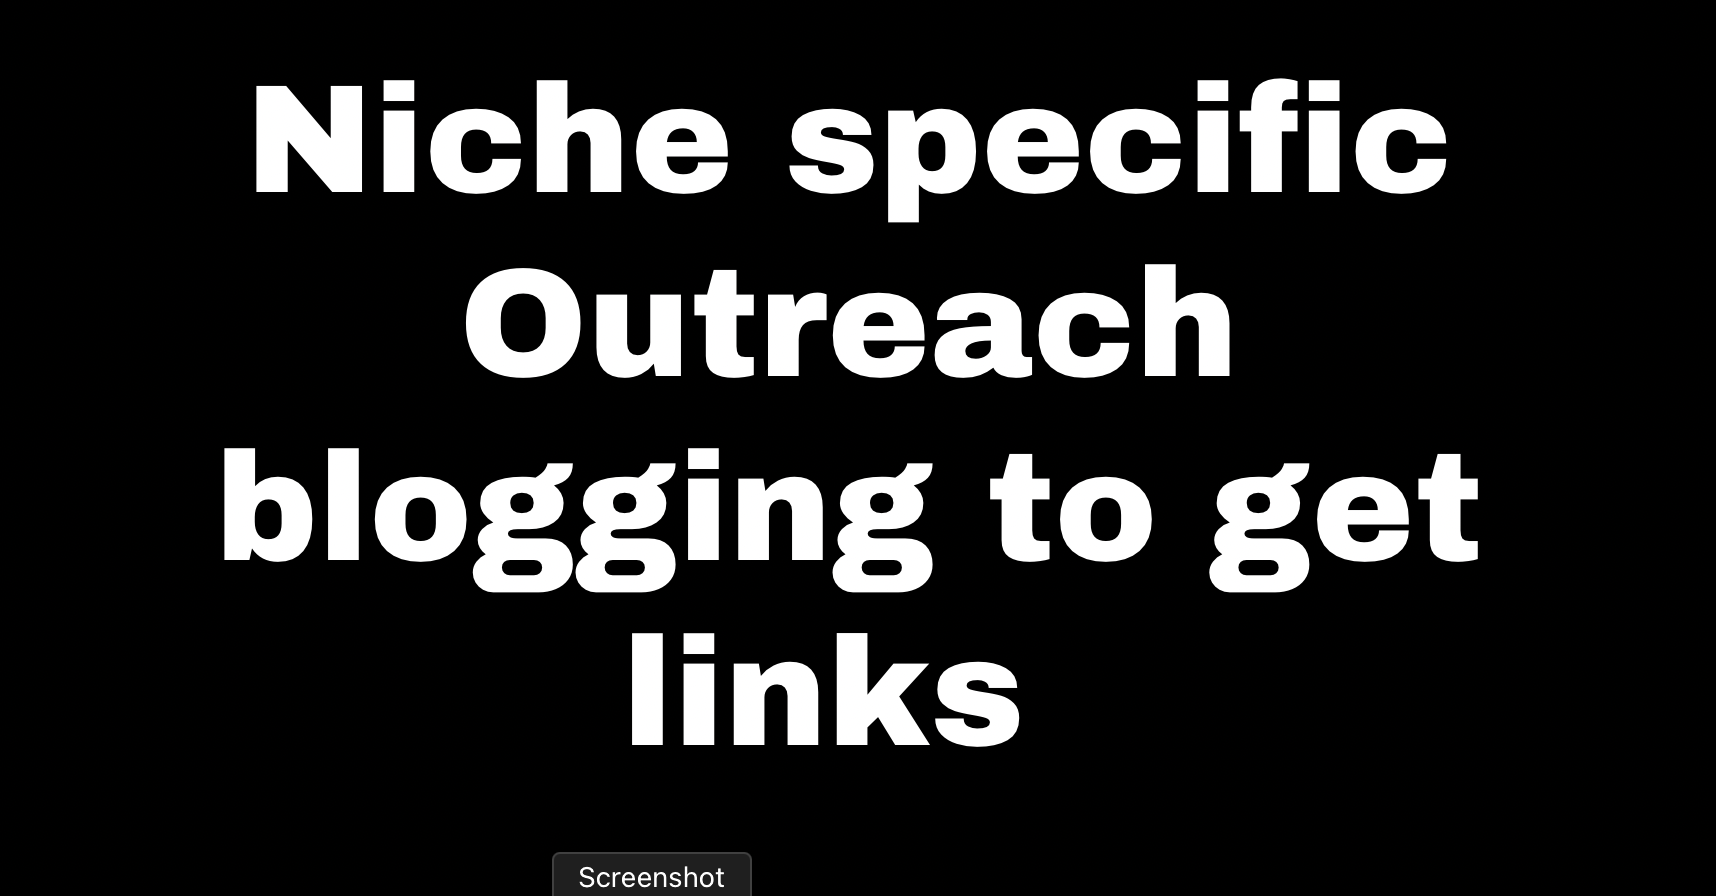 Niche specific Outreach blogging to get links from quality sites